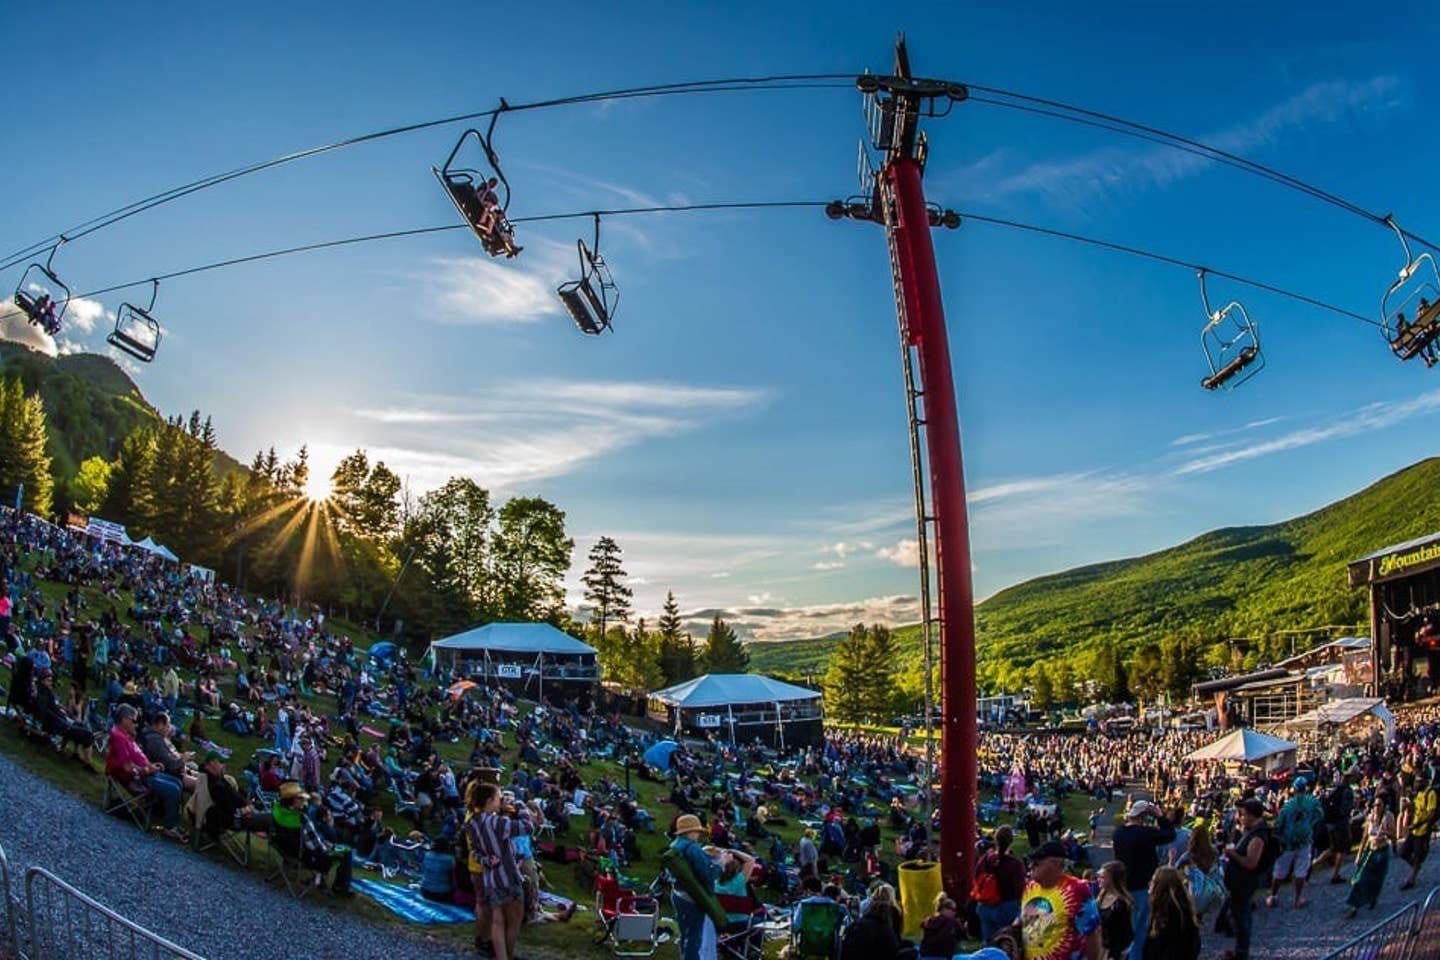 Festivals all season long at the mountain, just a short walk from the condo.